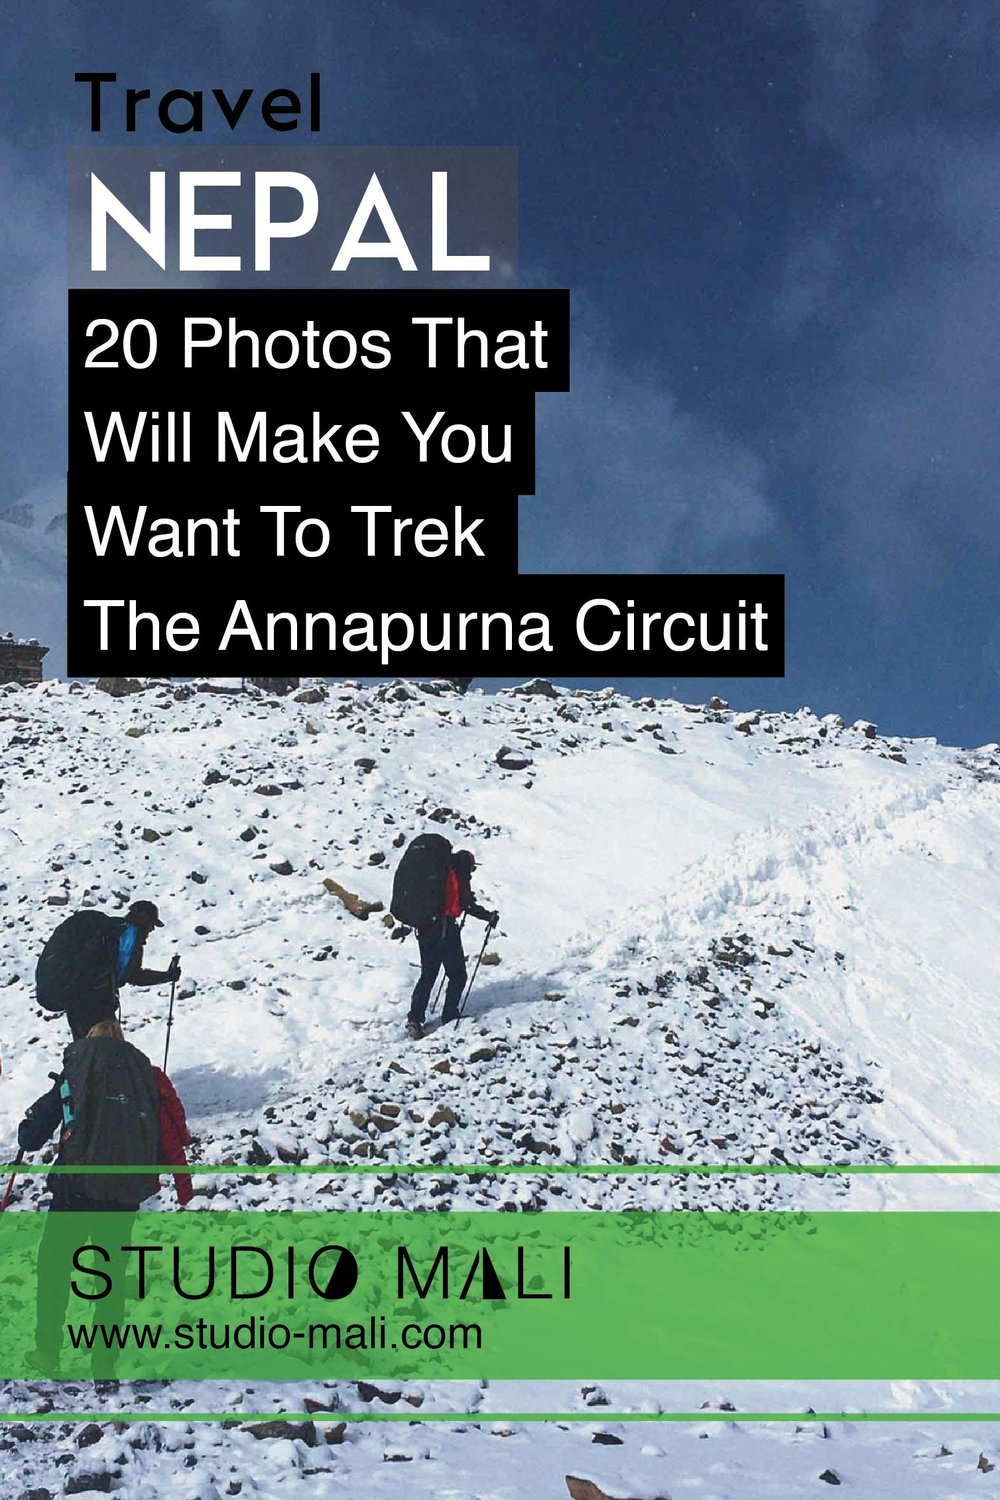 Nepal: 20 Photos That Will Make You Want To Trek The Annapurna Circuit, By Studio Mali